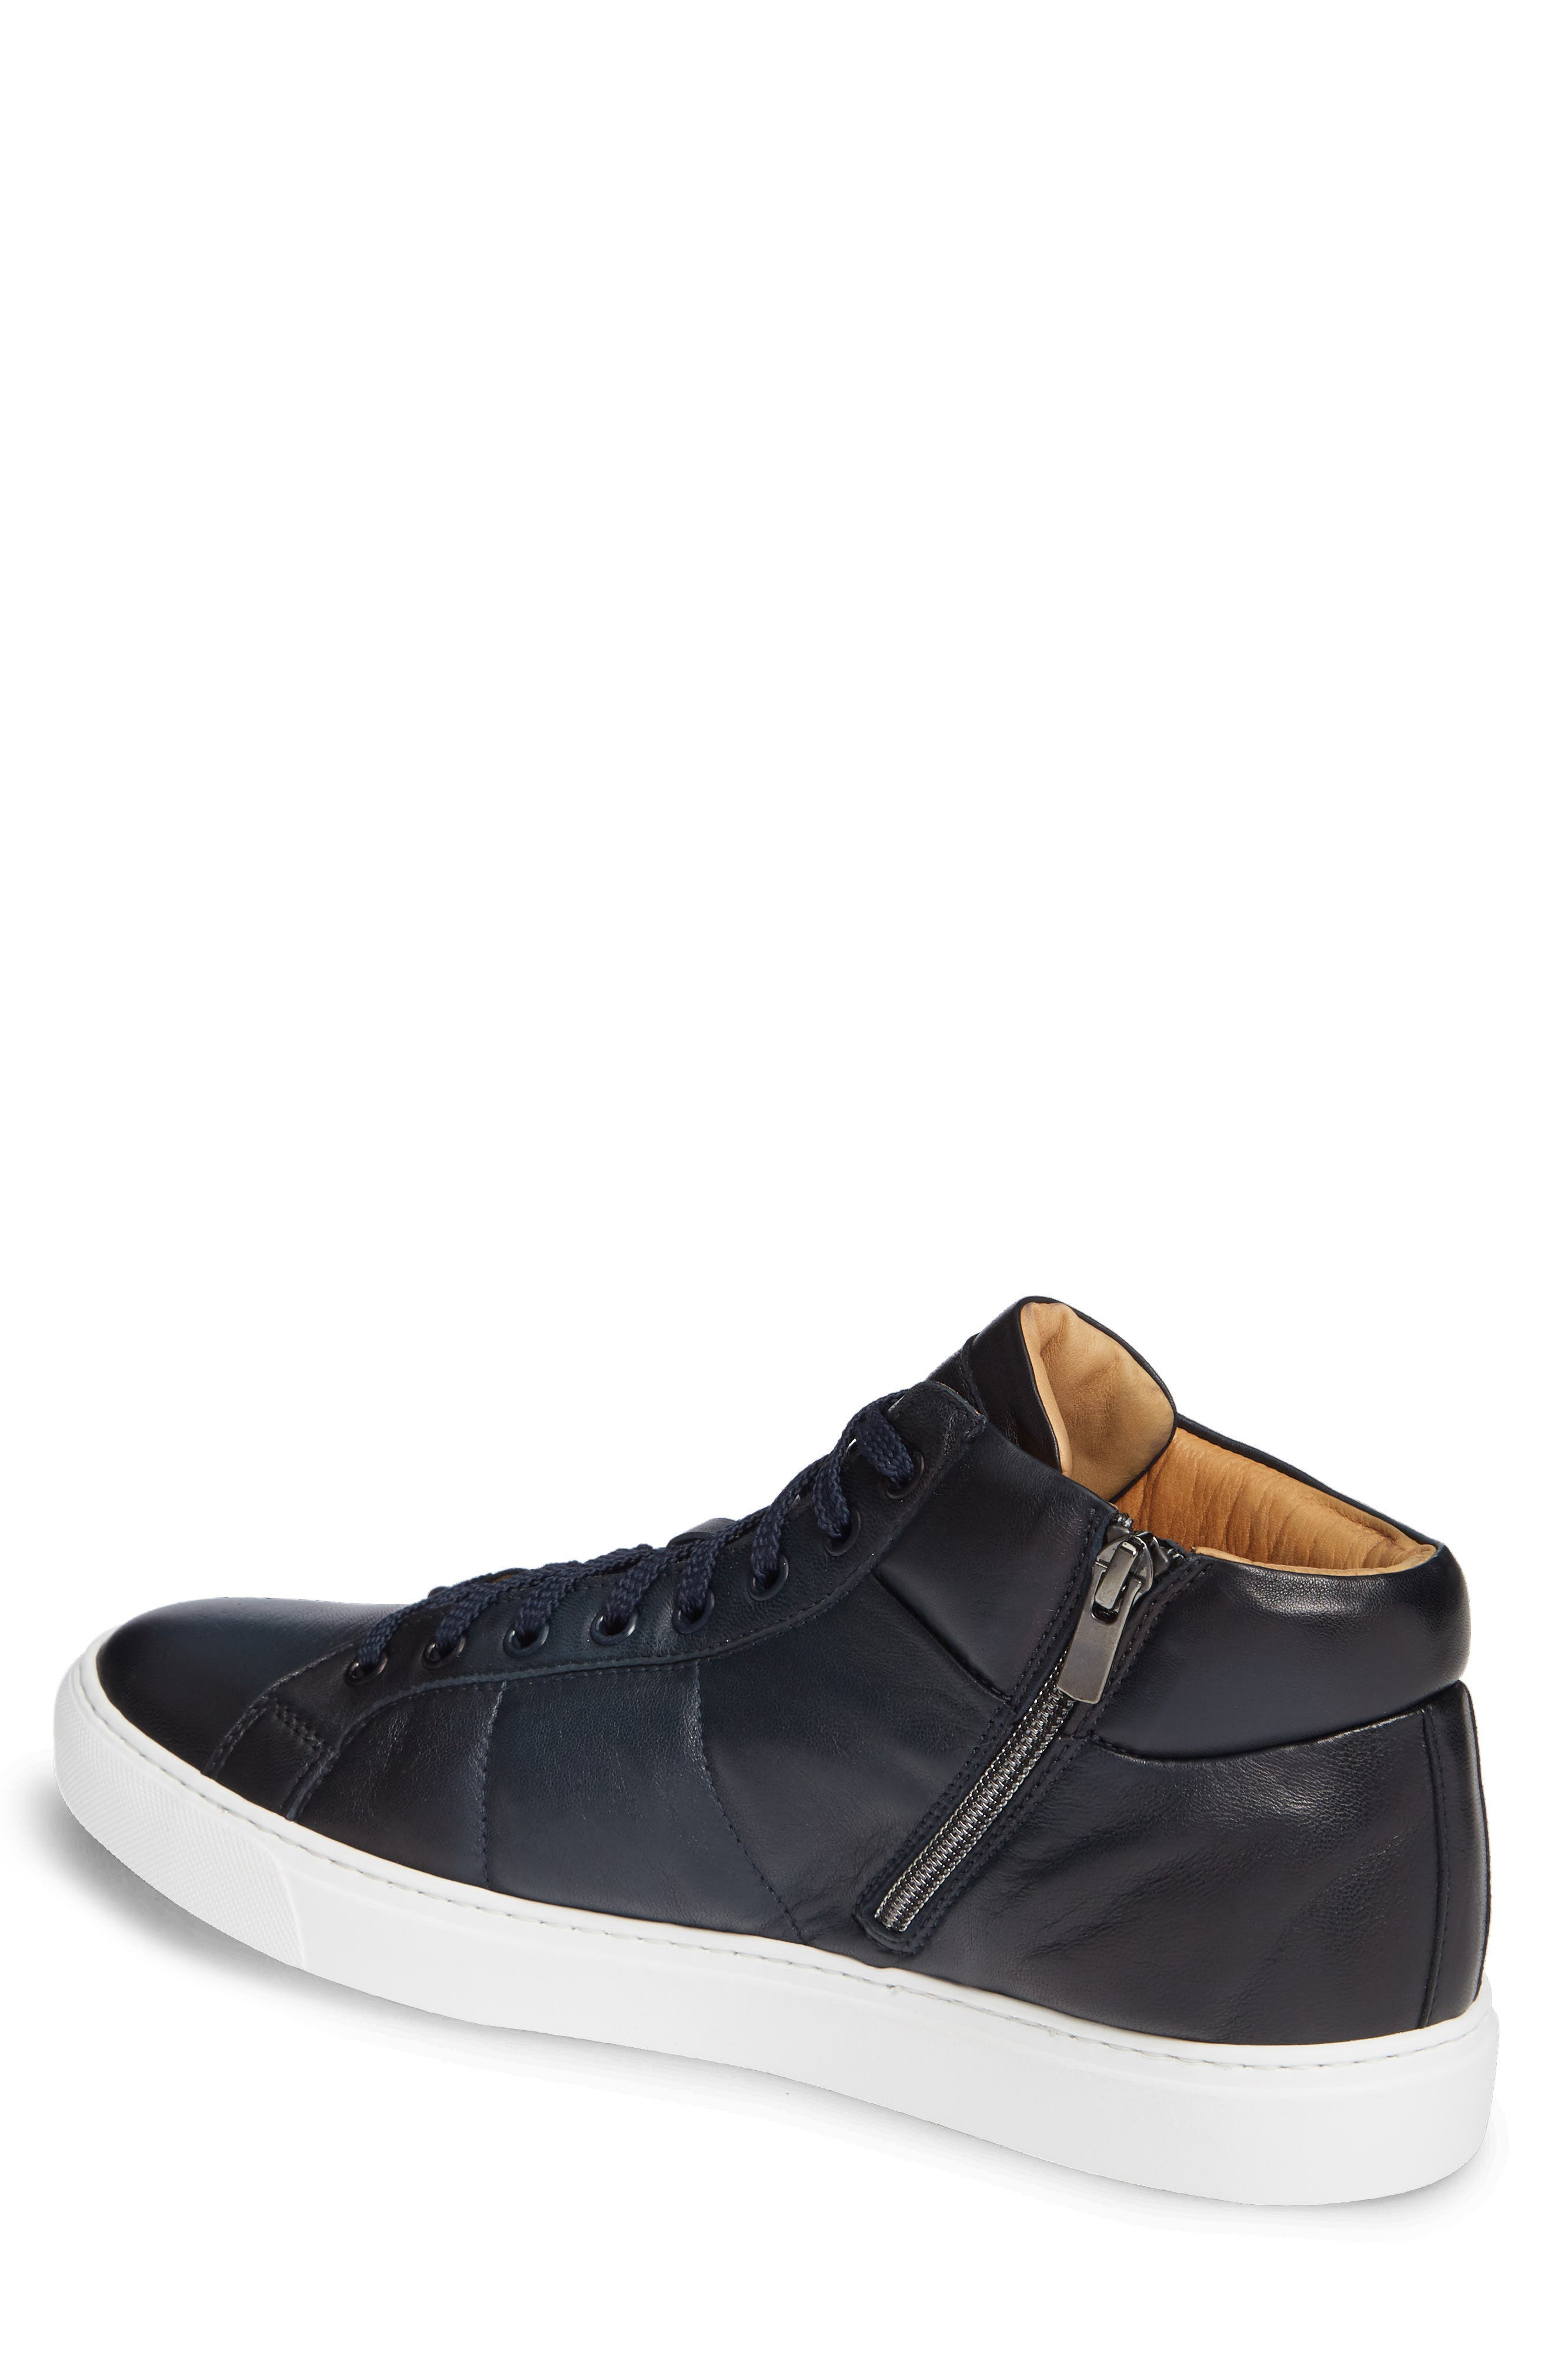 Rayburn Mid Top Sneaker,                             Alternate thumbnail 2, color,                             NAVY LEATHER